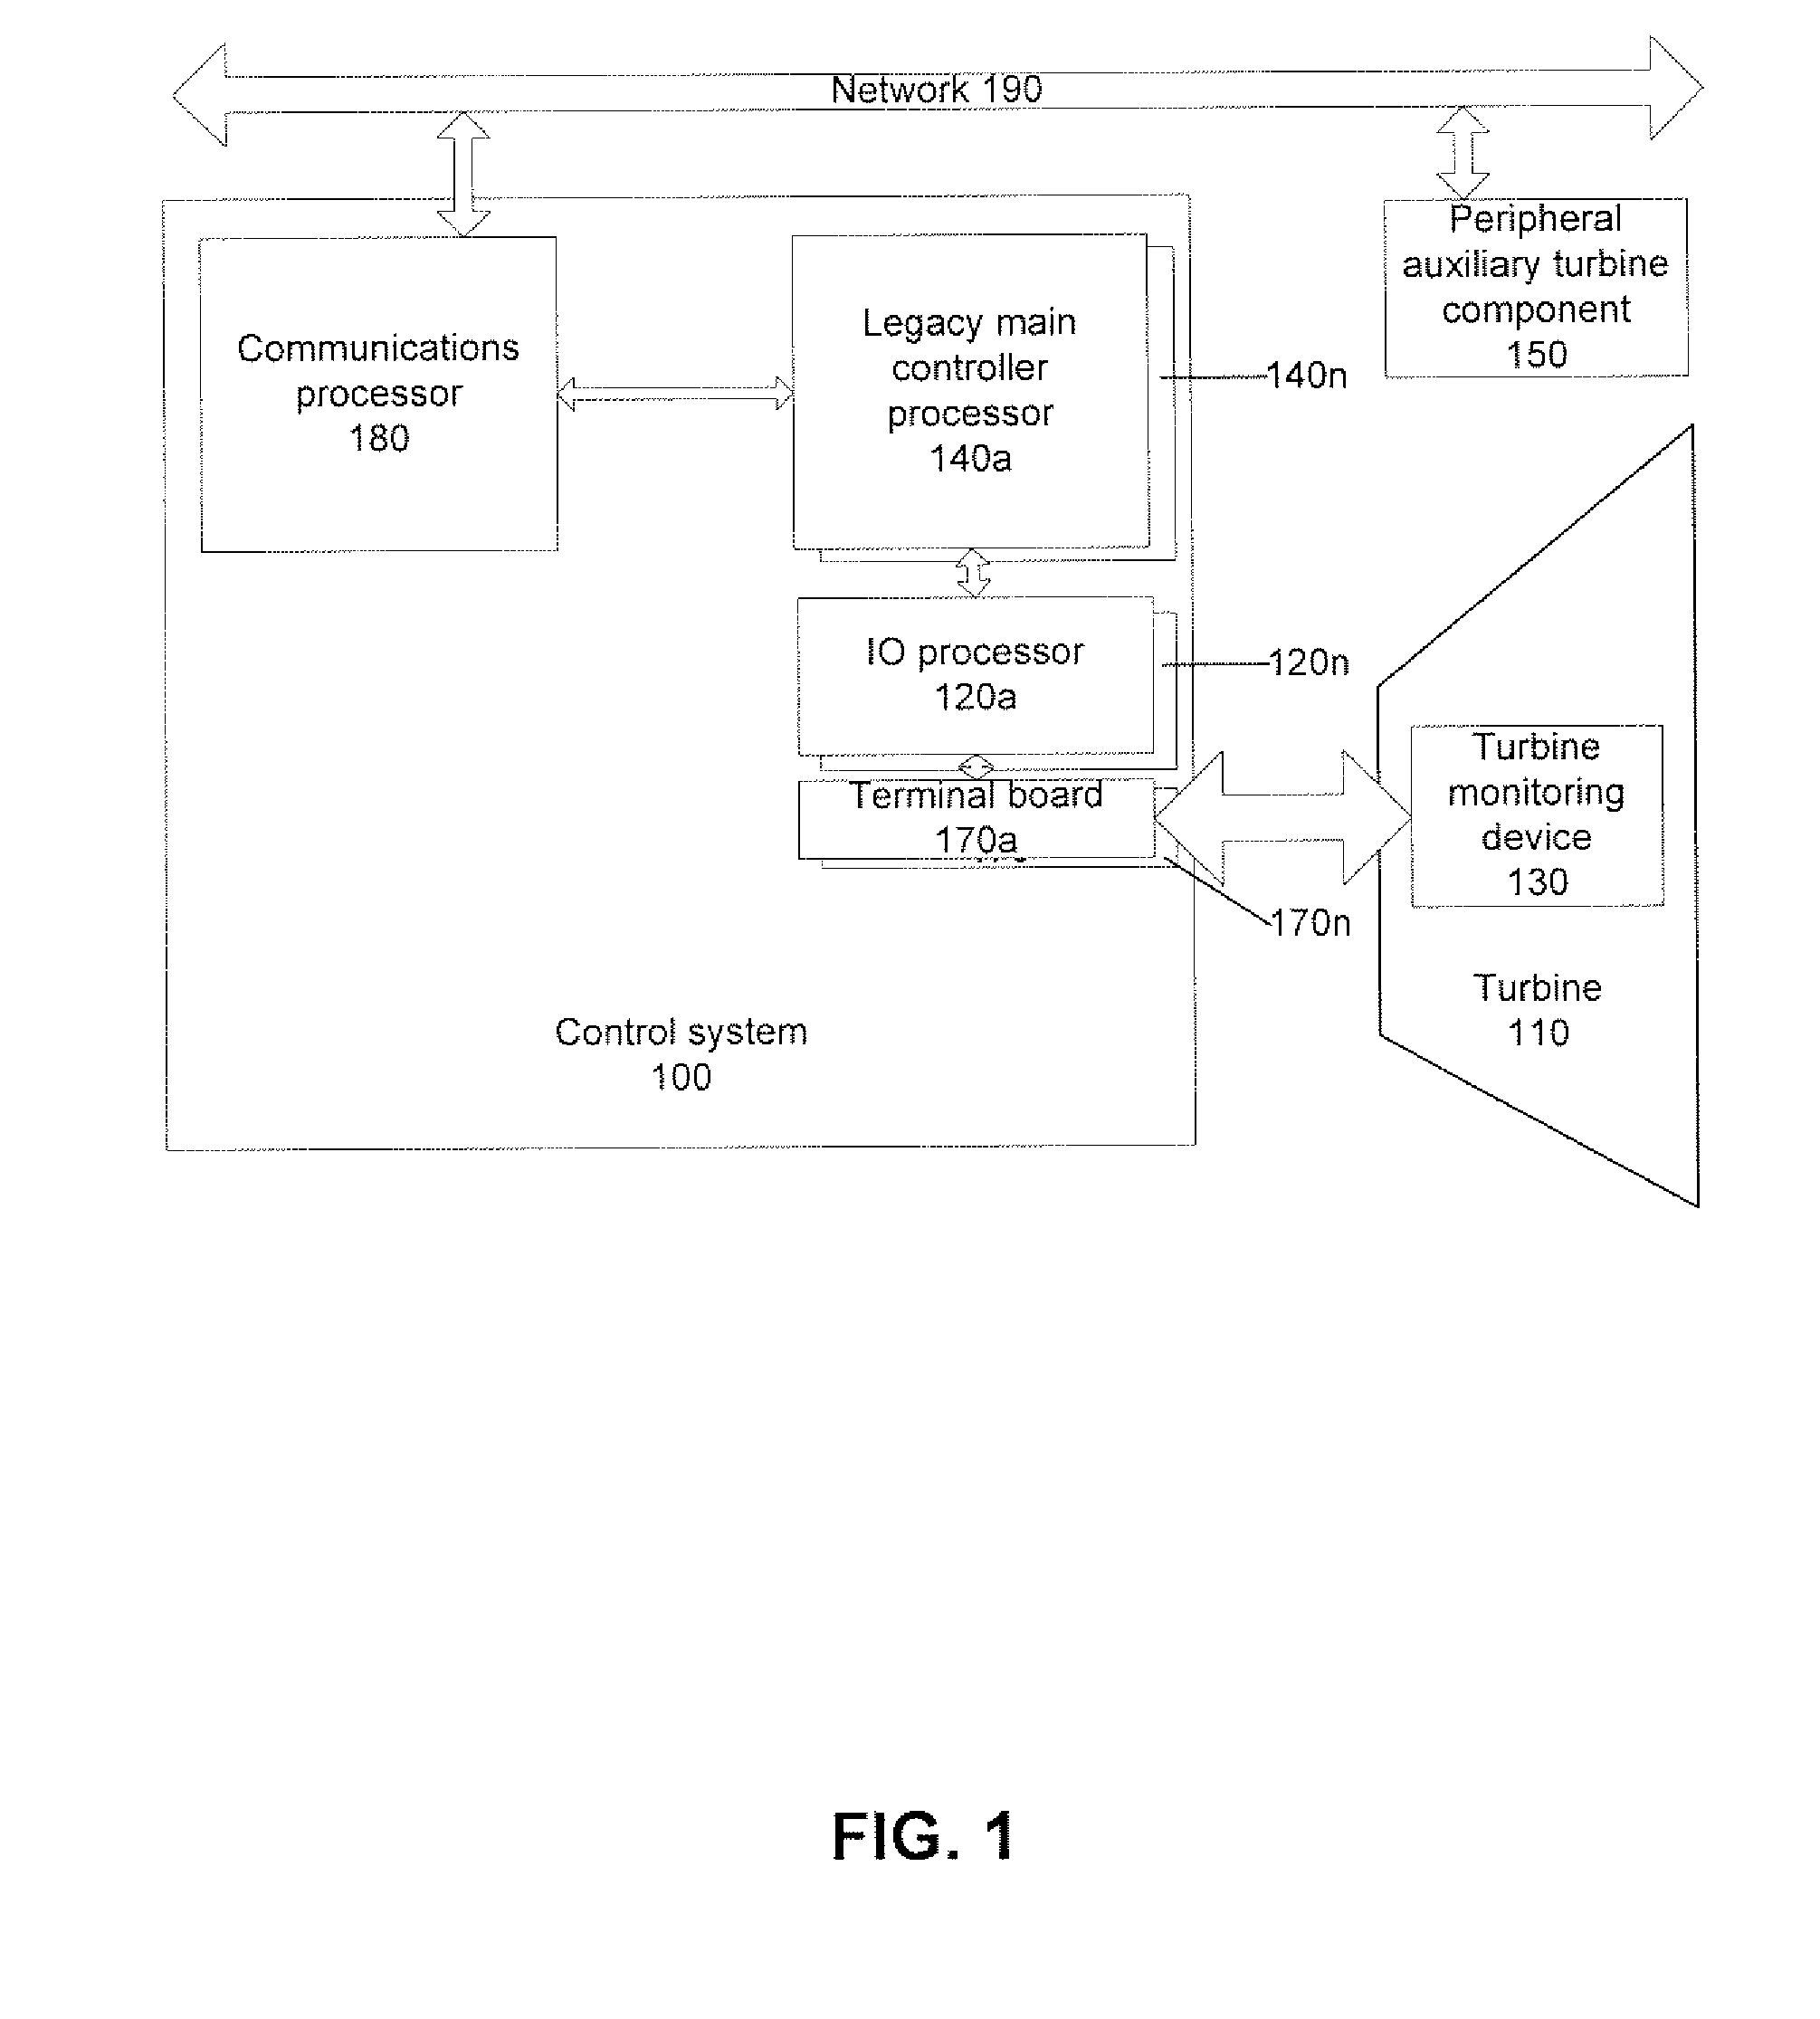 Patent US Methods and Systems for Modifying Turbine